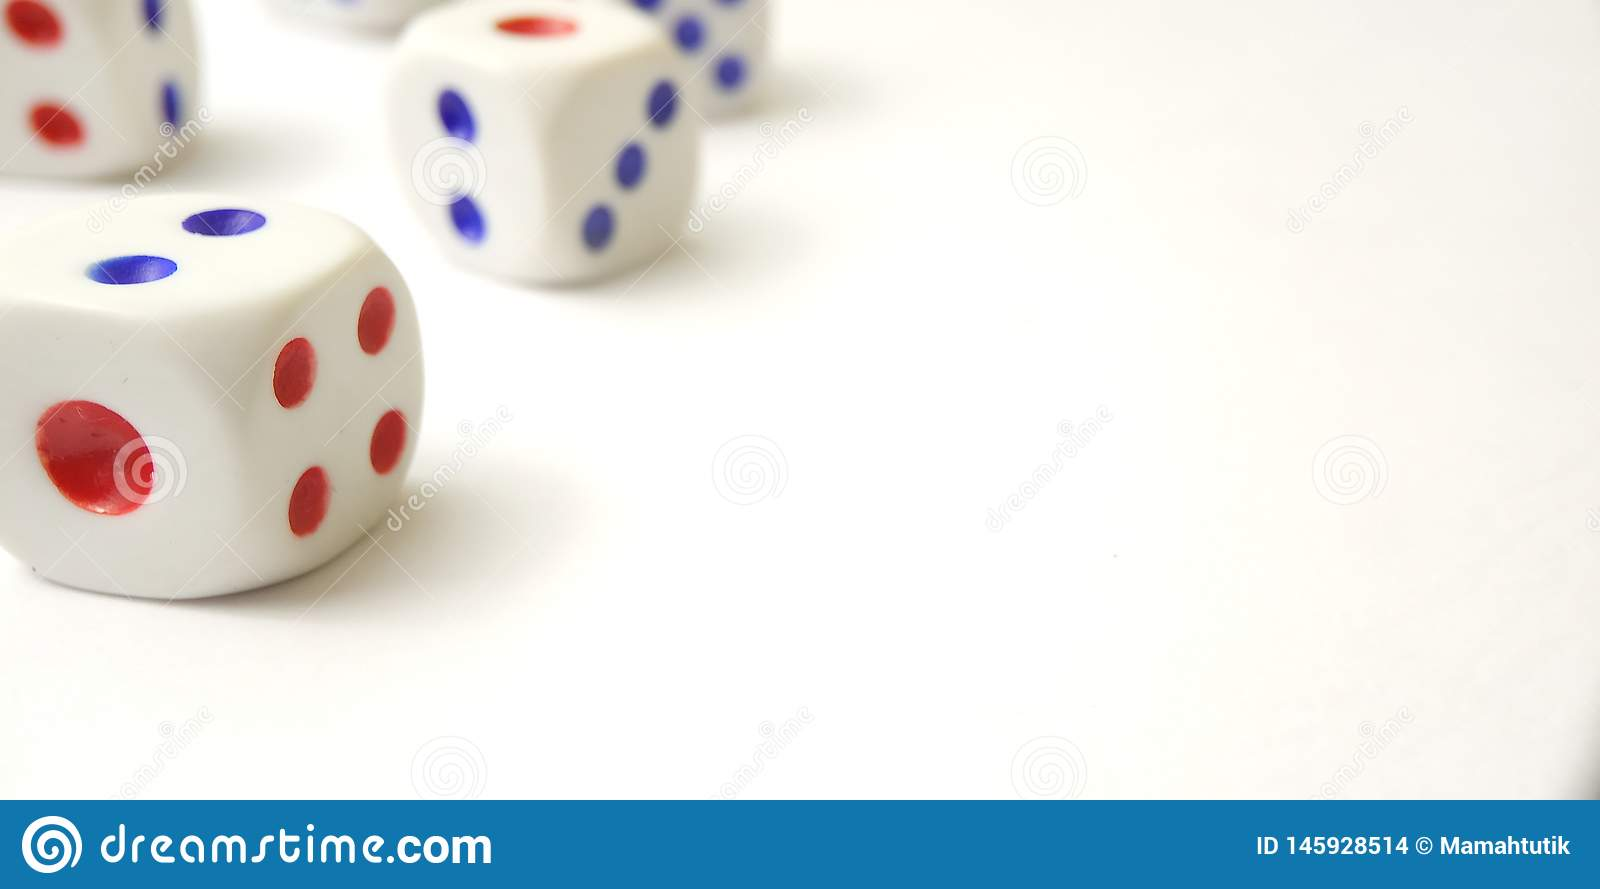 Conceptual Close up, Plastic Dice with white negative space for text placement area